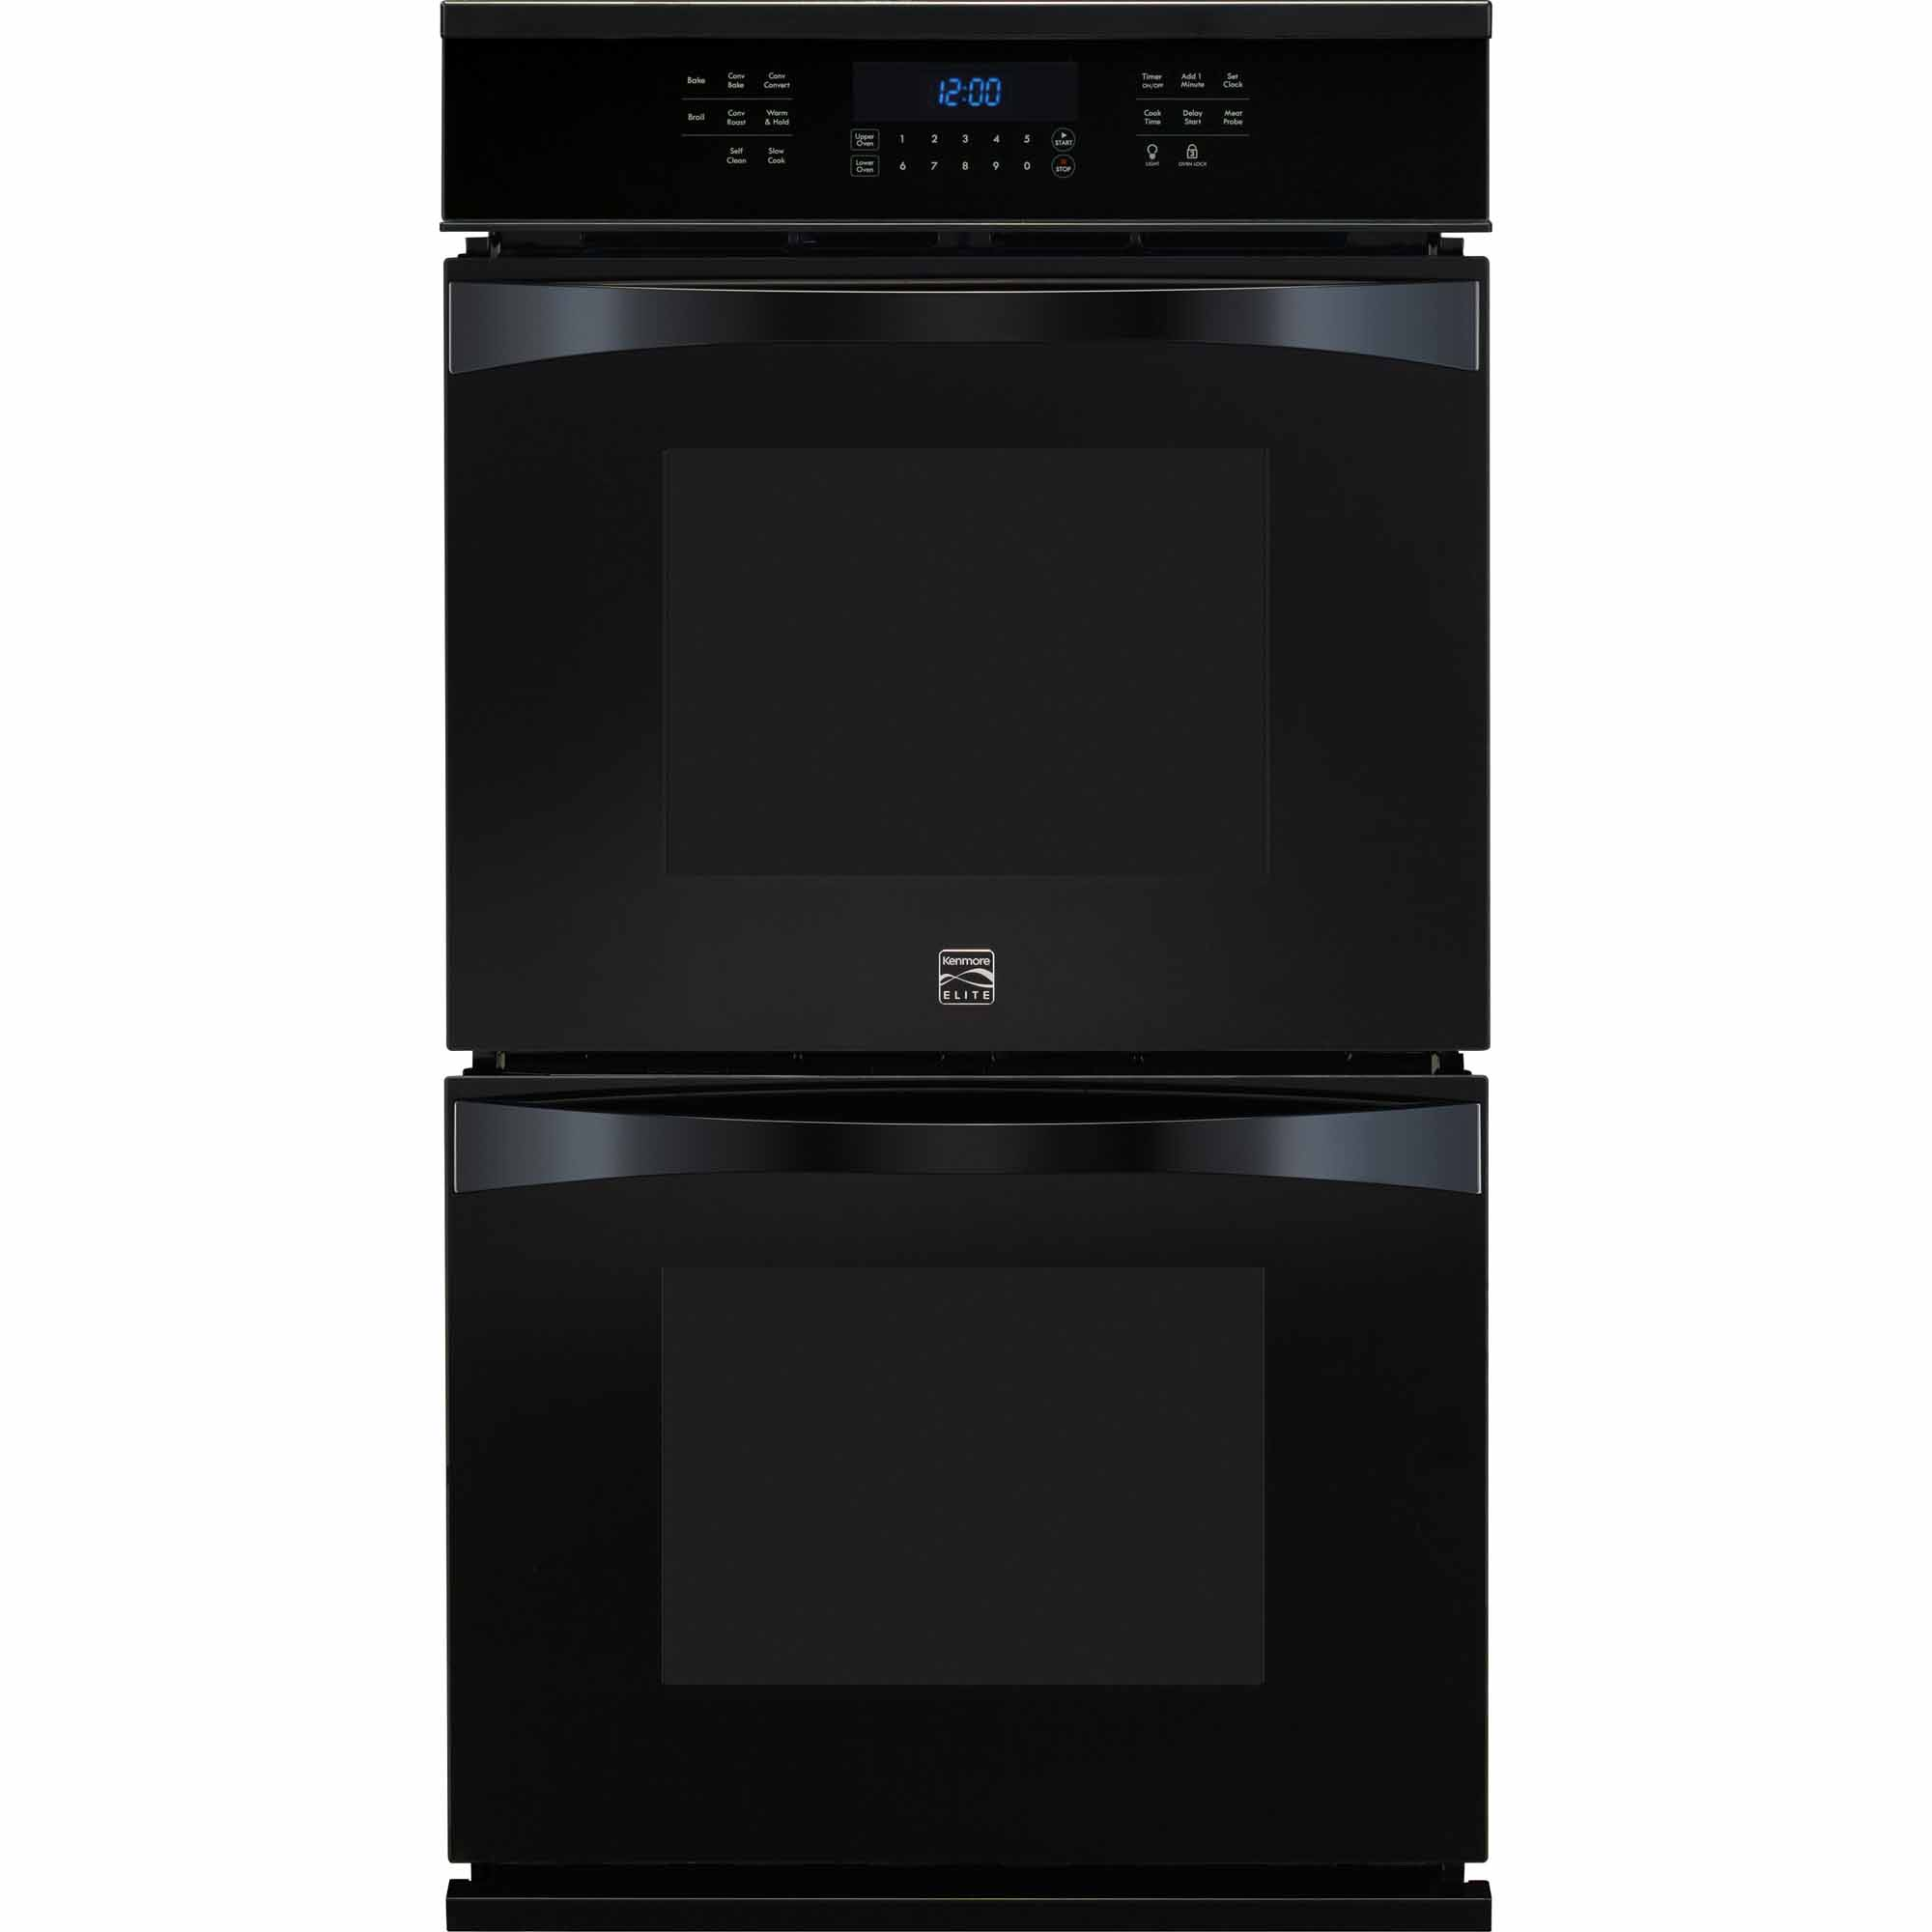 Kenmore Elite 48449 27 Electric Double Wall Oven w/ True Convection™  - Black